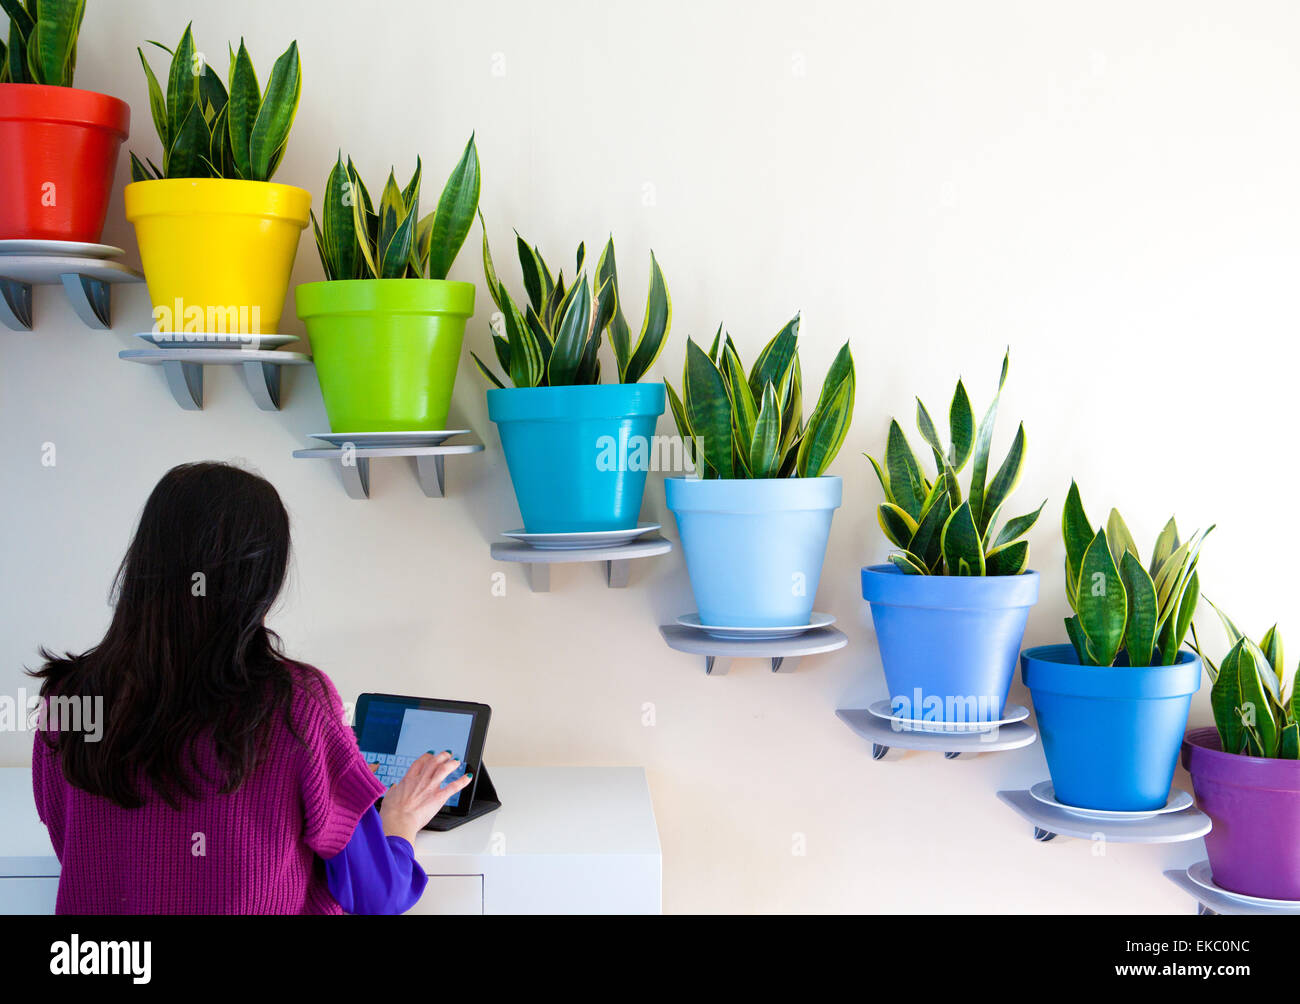 Rear view of woman using digital tablet in front of diagonal row of potted plants - Stock Image